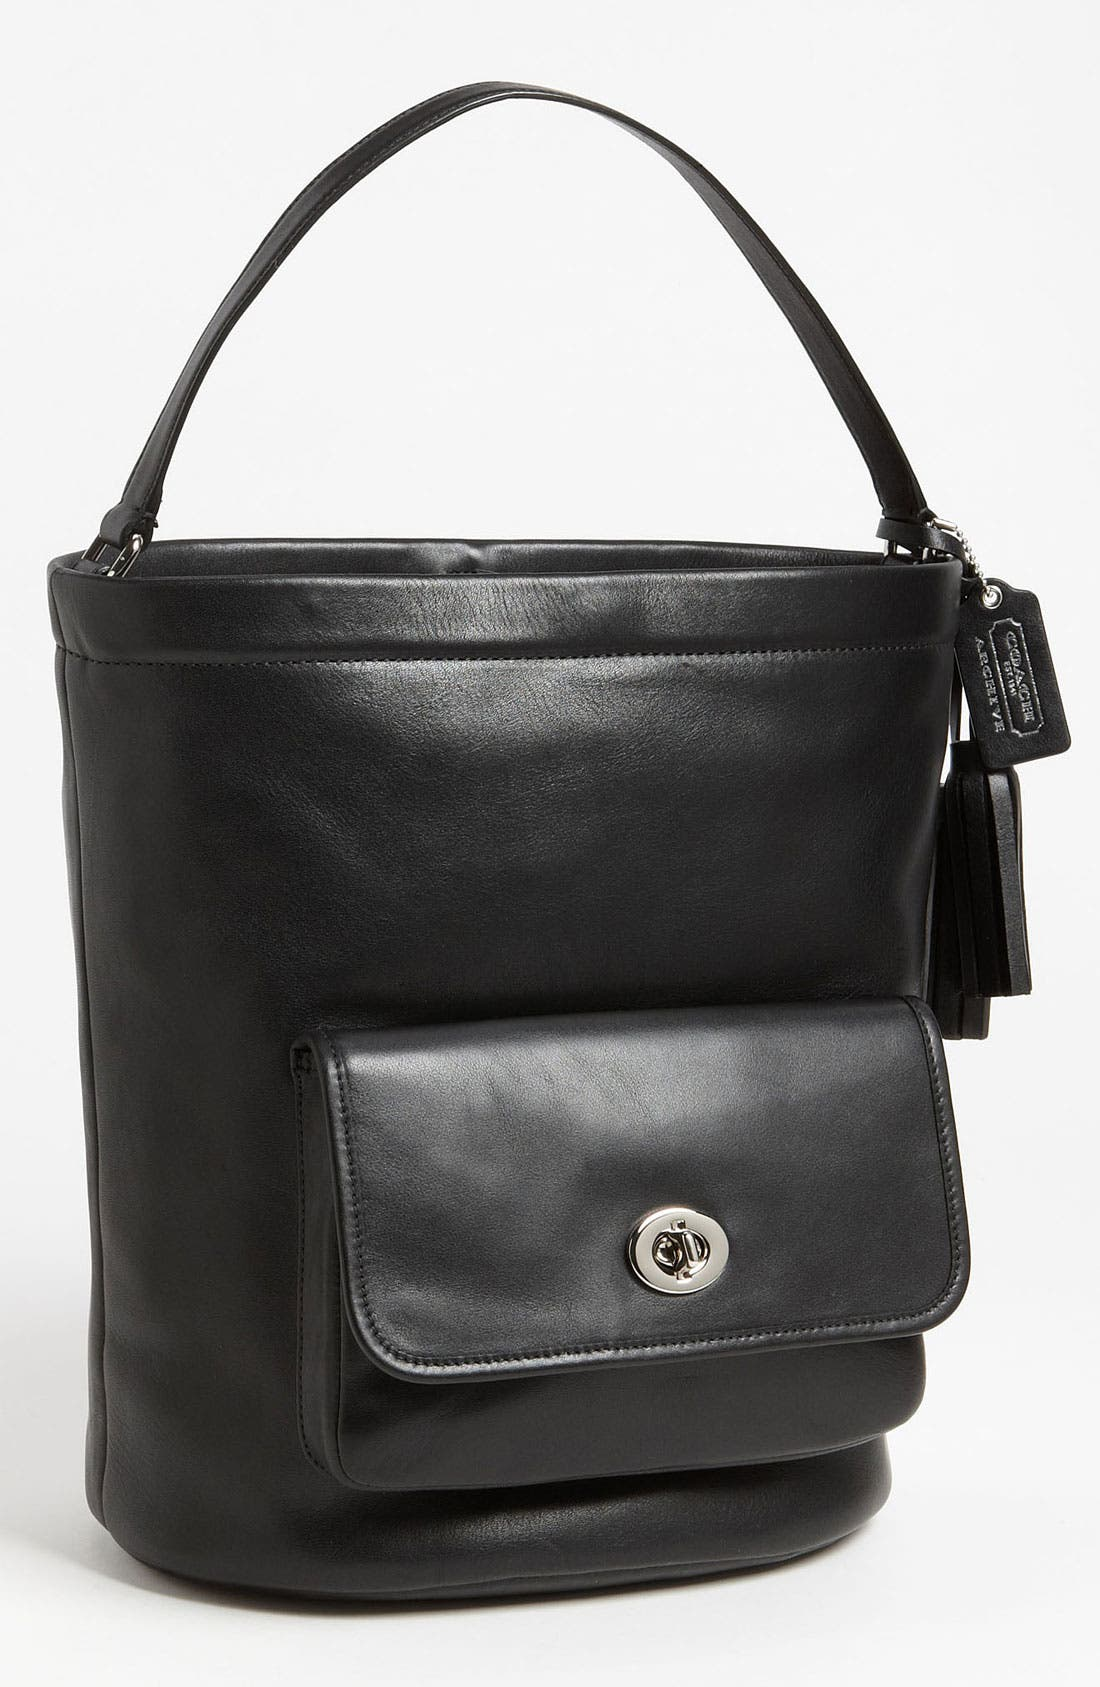 Main Image - COACH 'Legacy - Archival' Bucket Bag